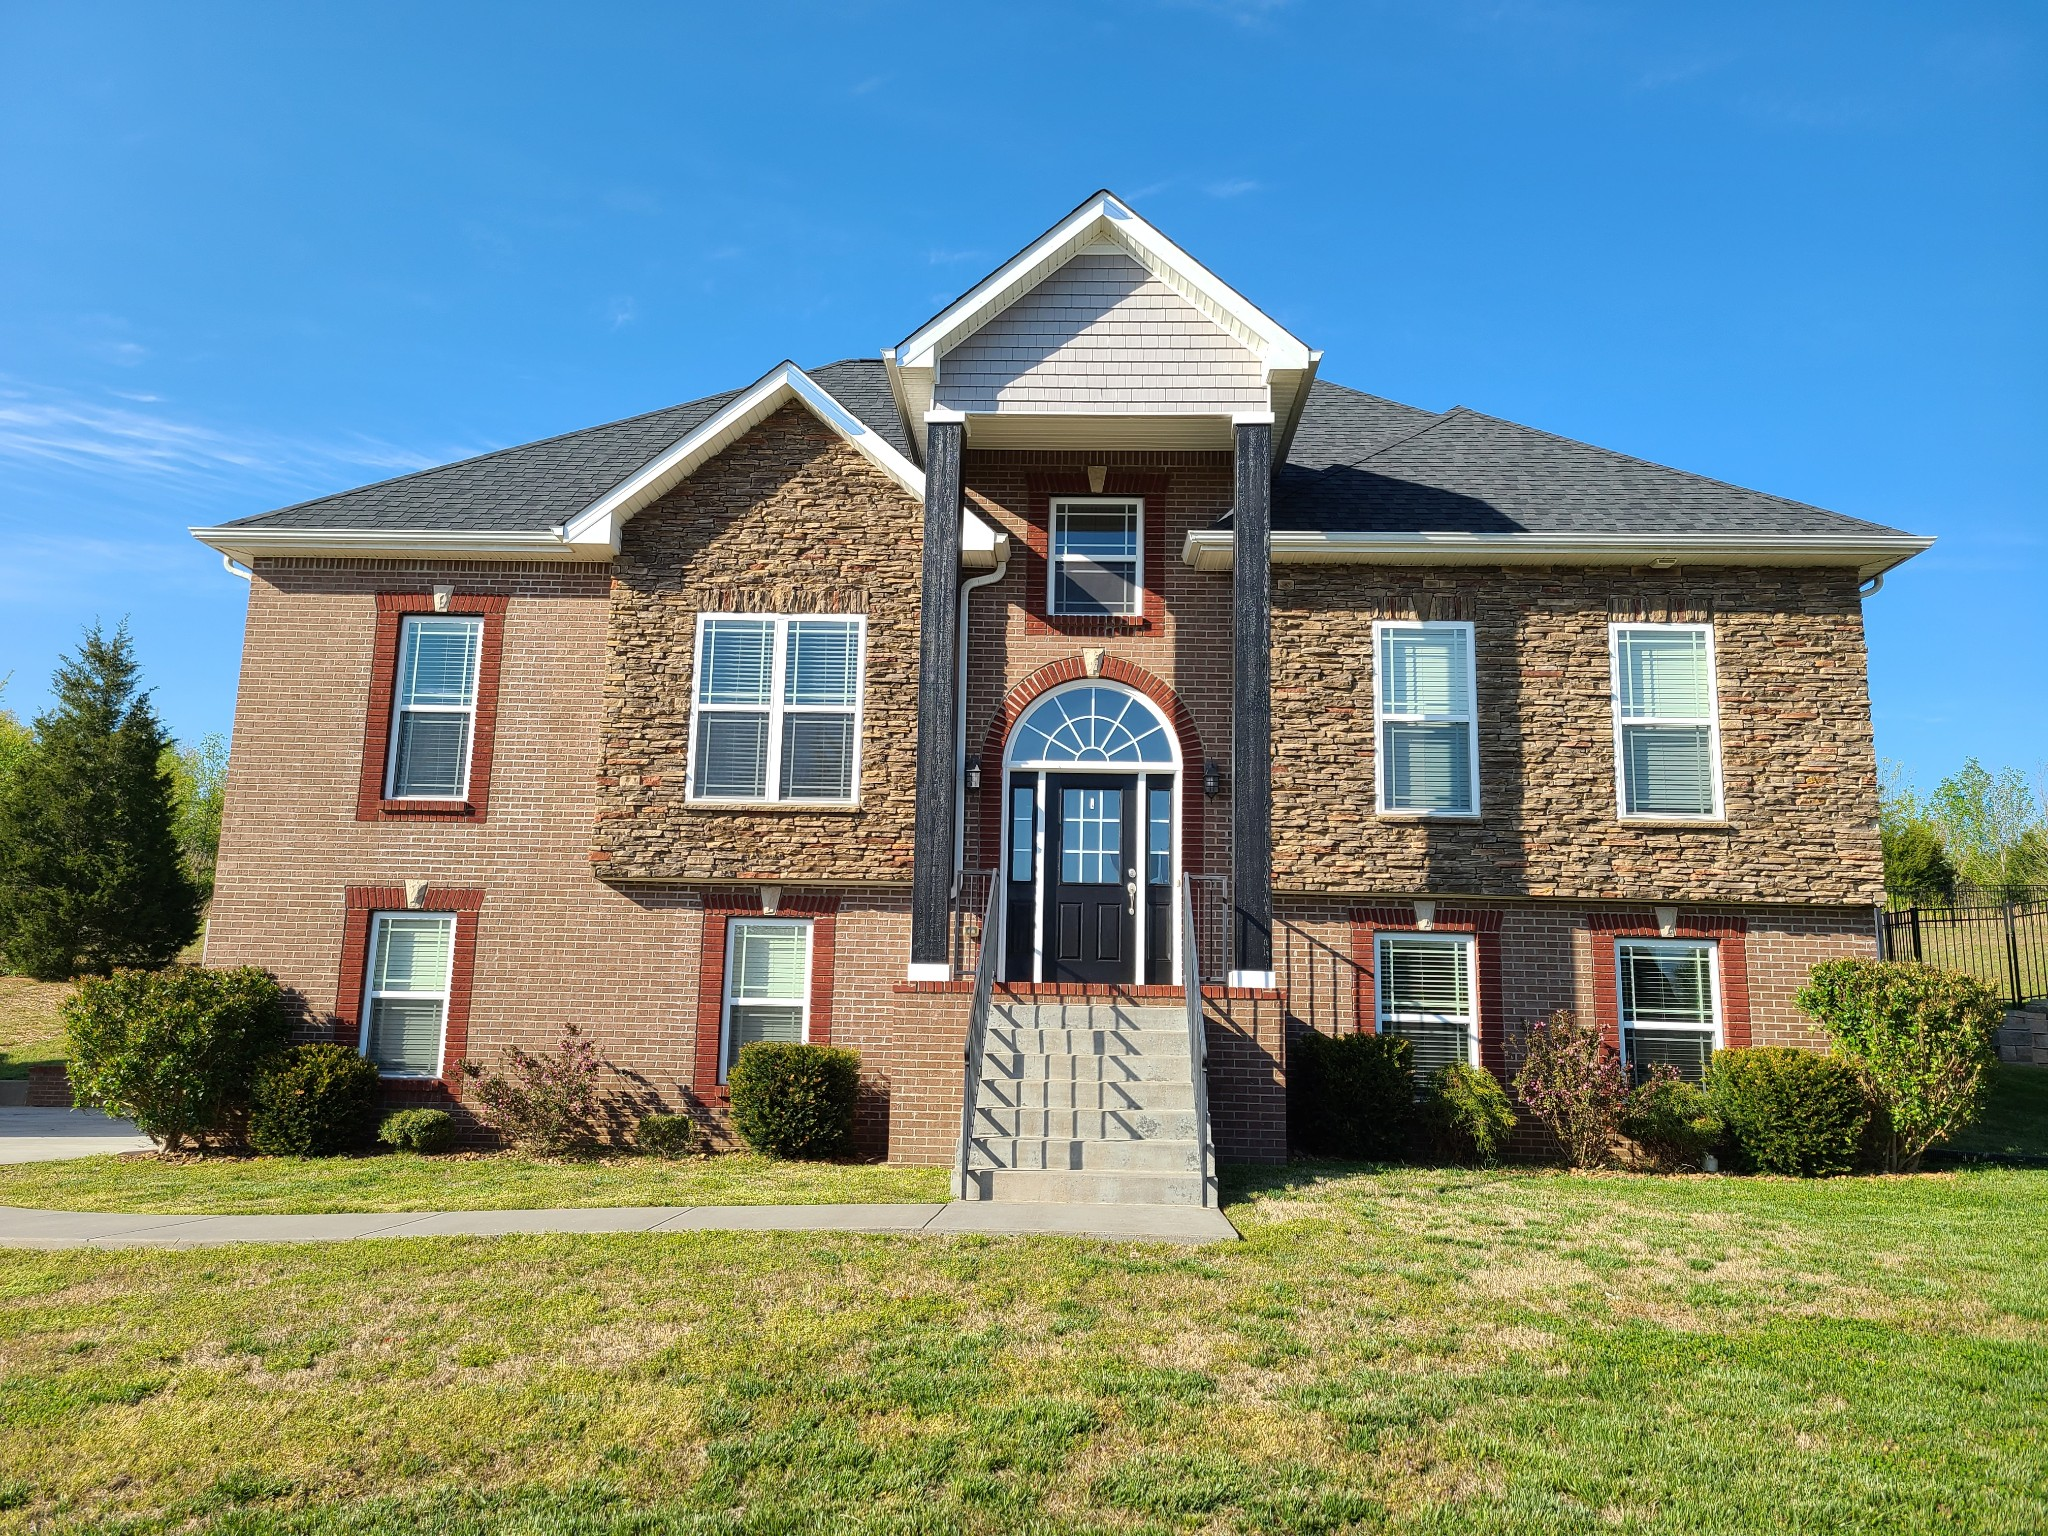 3523 Rabbit Run Trl Property Photo - Adams, TN real estate listing